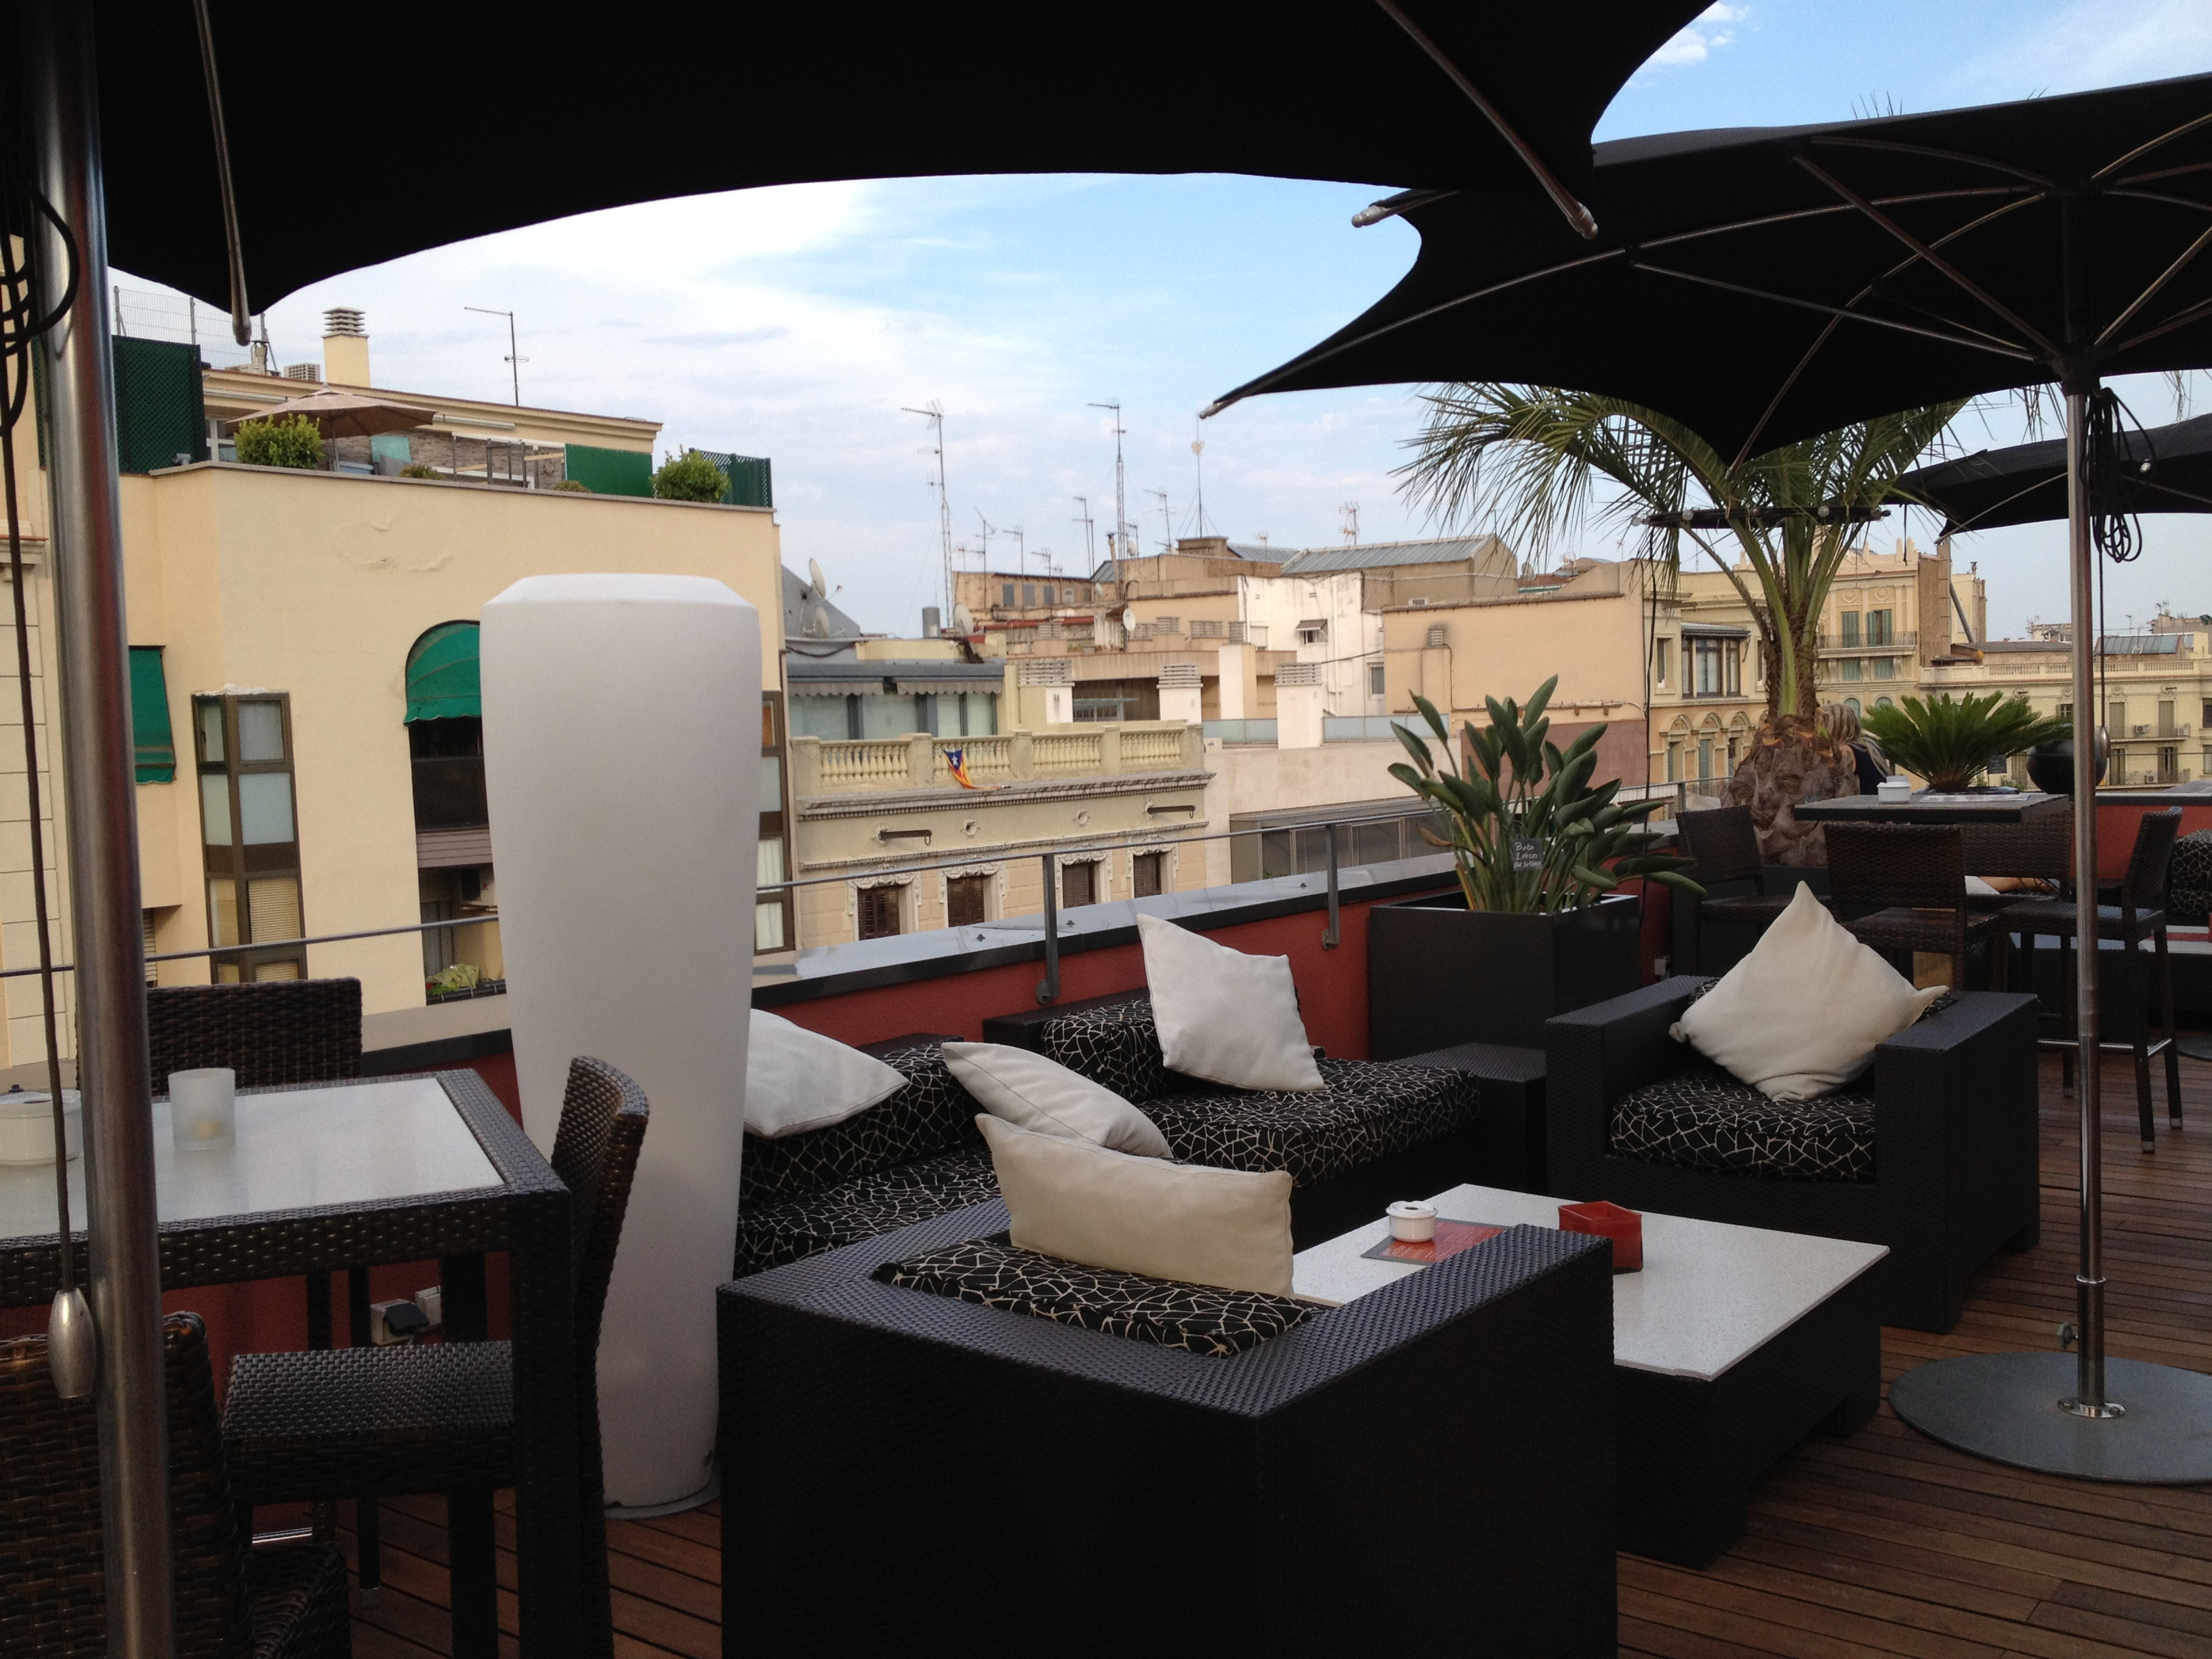 Relaxing a little bit posh...that's the characteristic of the Villa Emilia Rooftop Bar